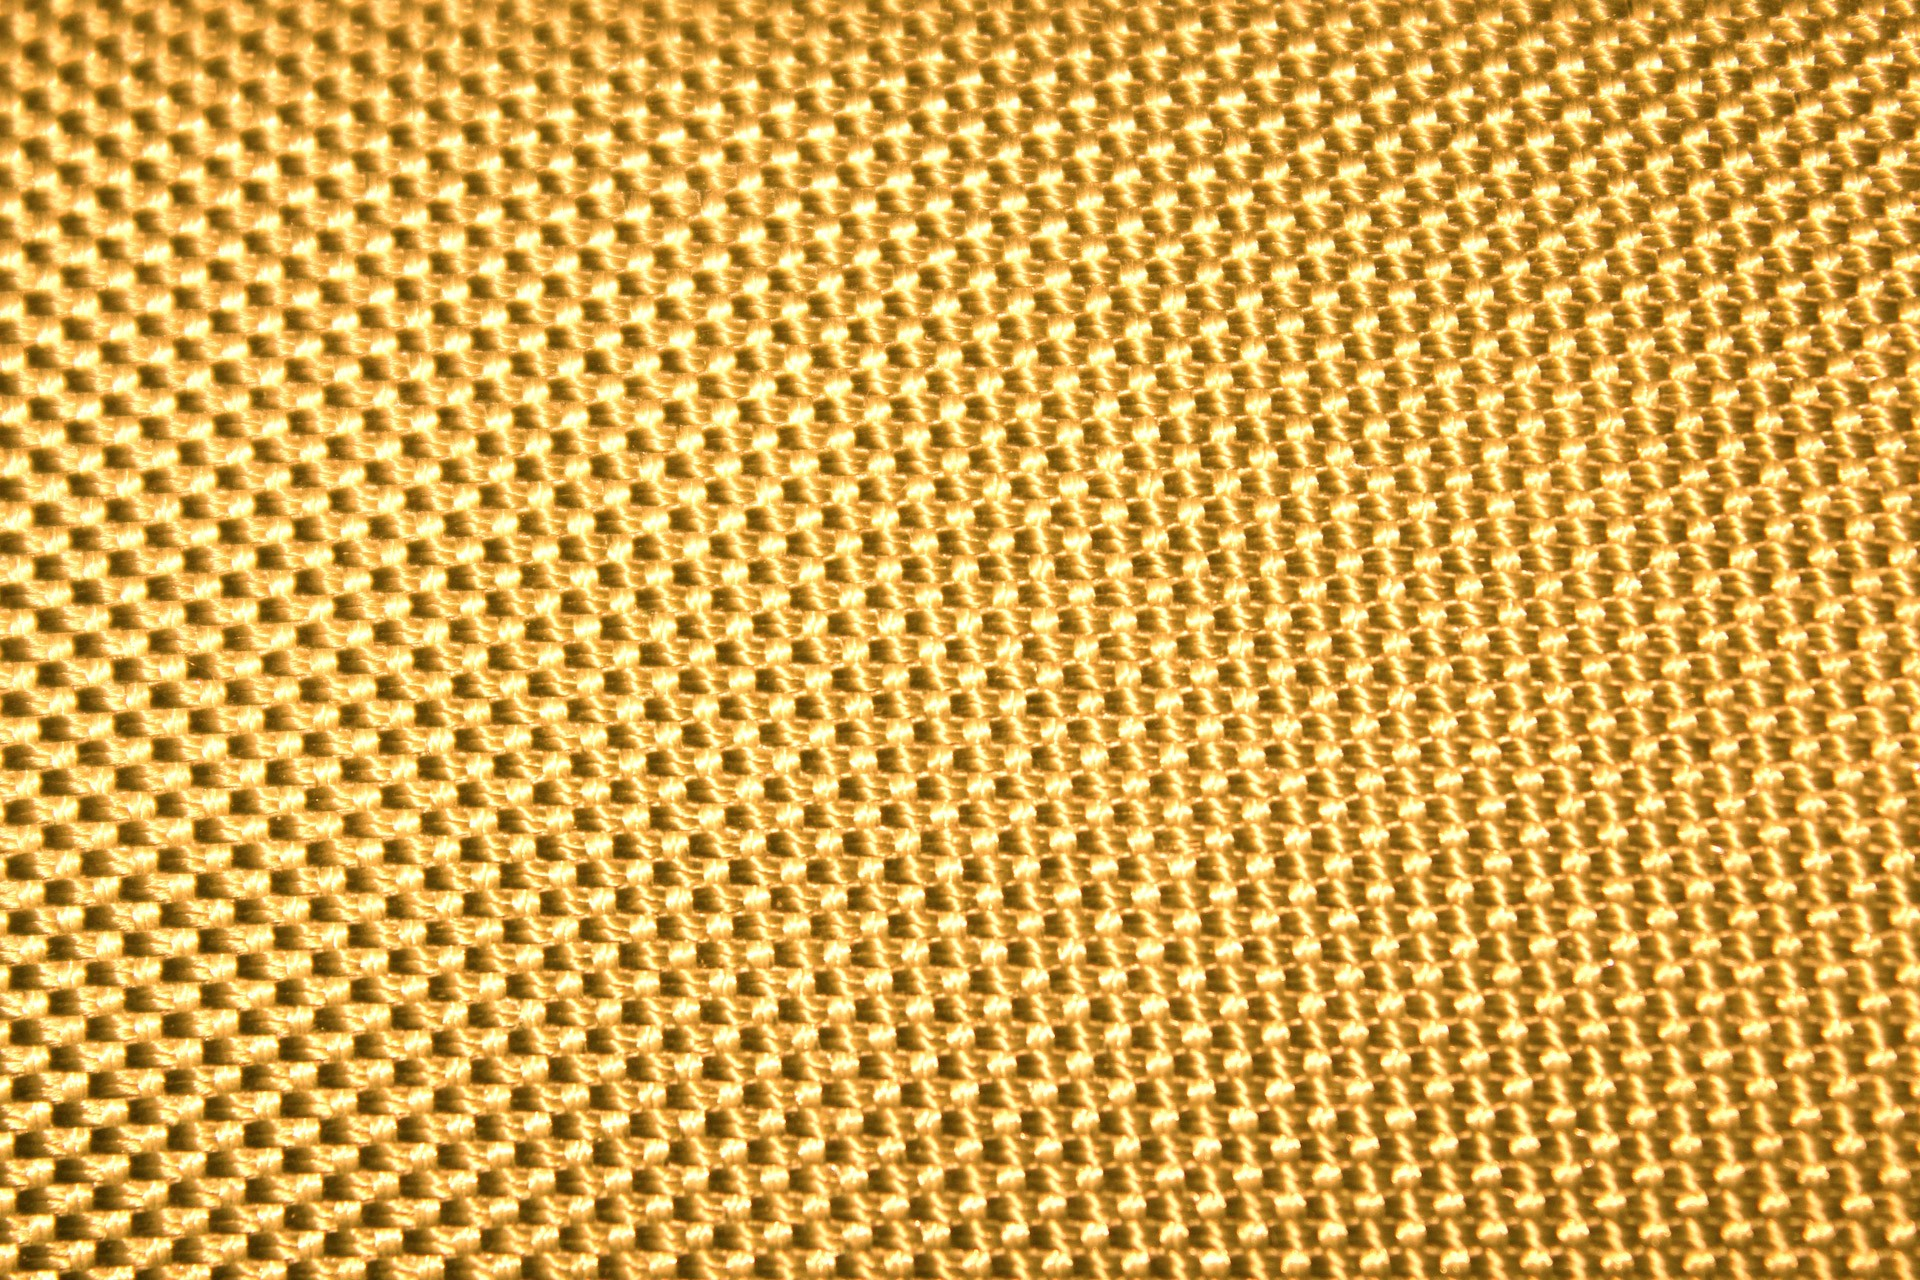 shiny-gold-background-wallpaper